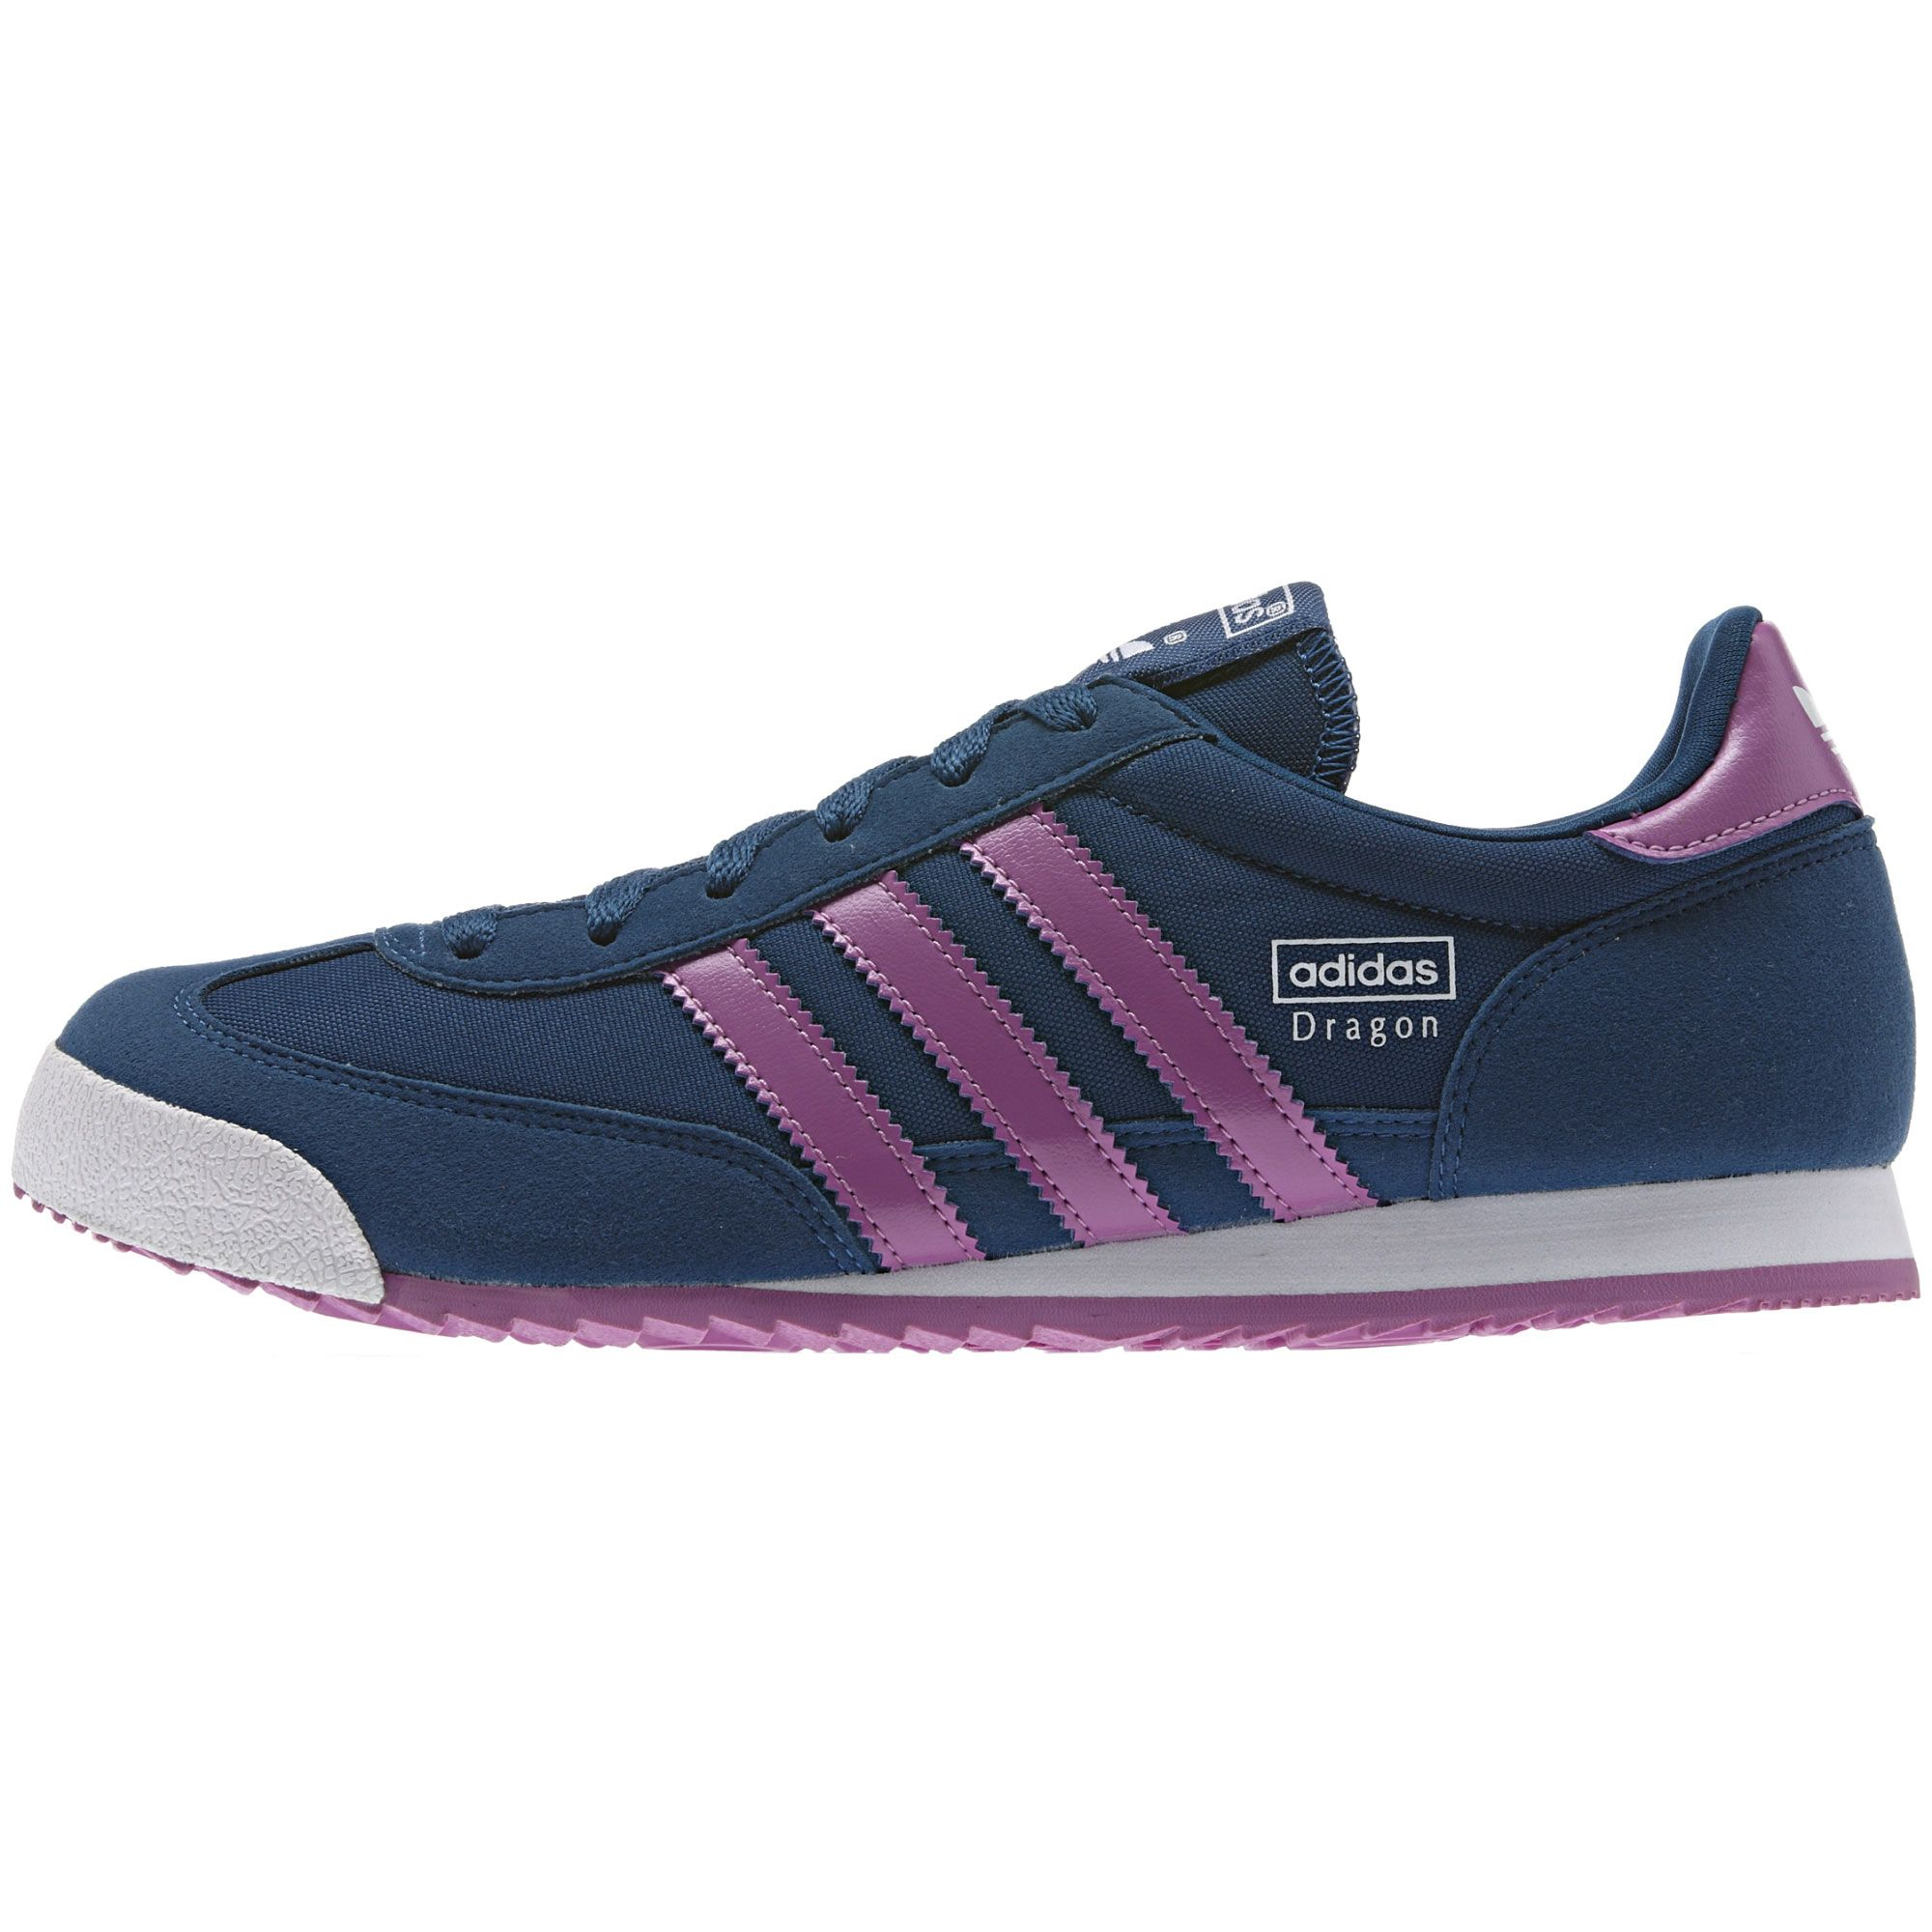 459caf499aa23 Zapatilla Dragon adidas